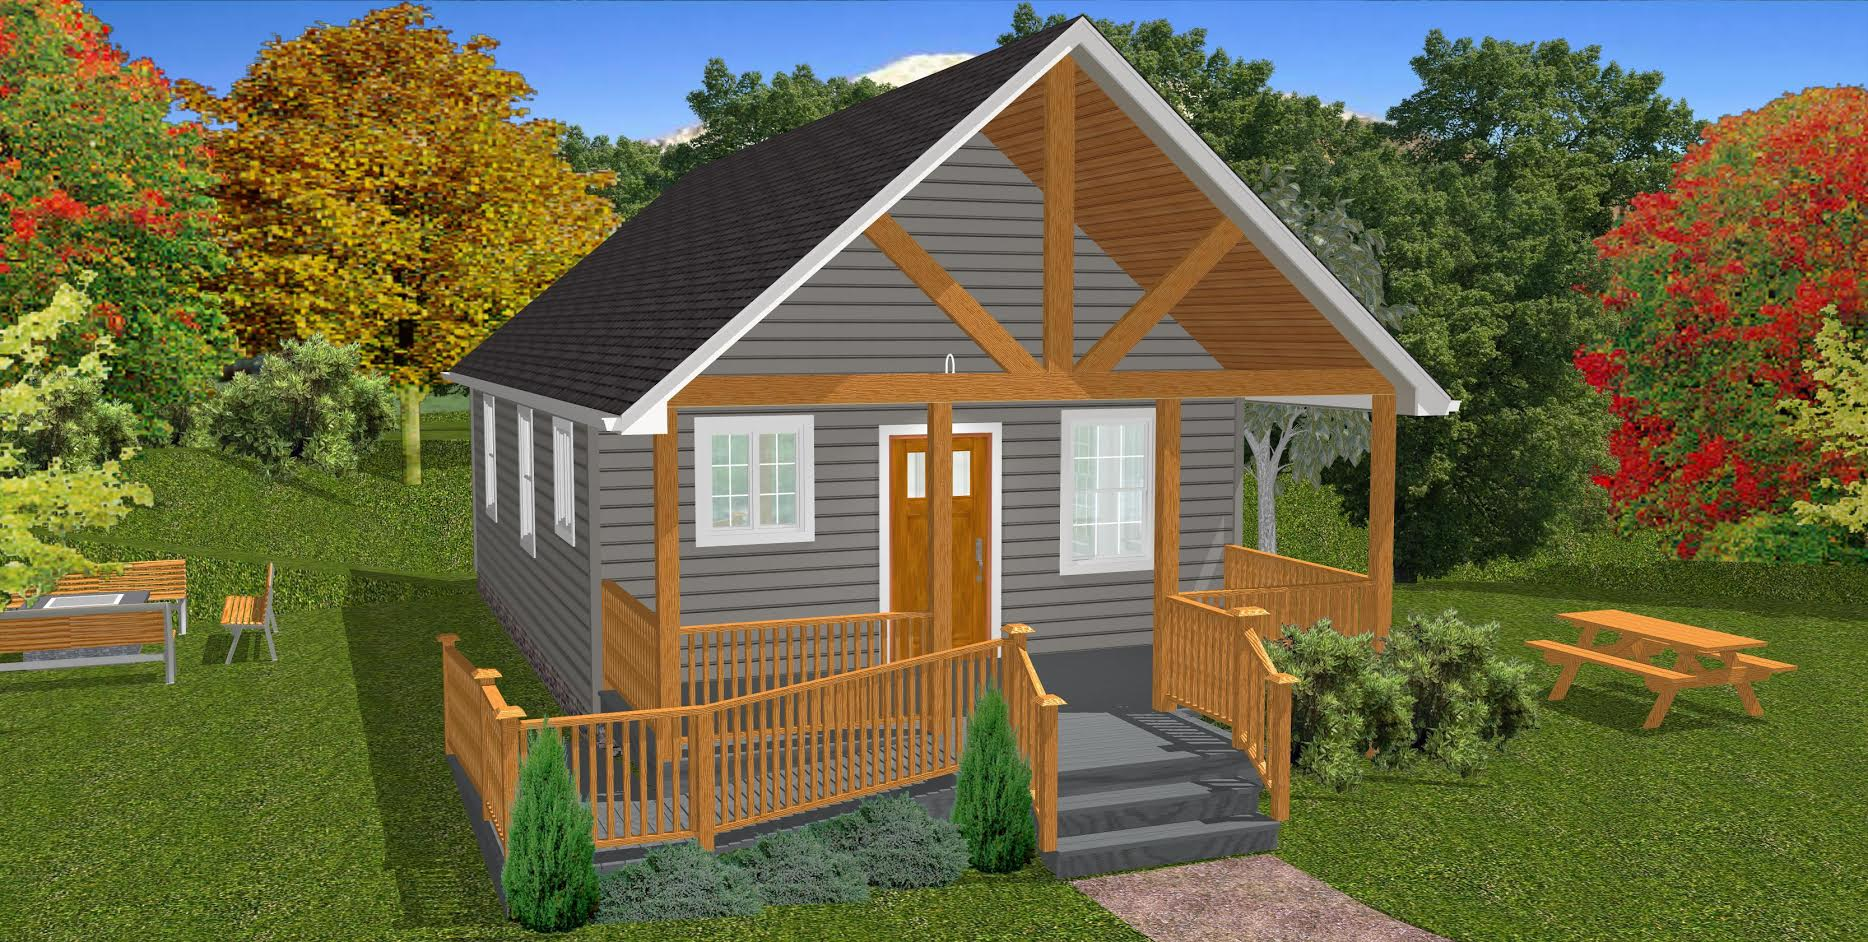 Small Home Plans: The Oasis: 600 Sq. Ft. Wheelchair-Friendly Home Plans